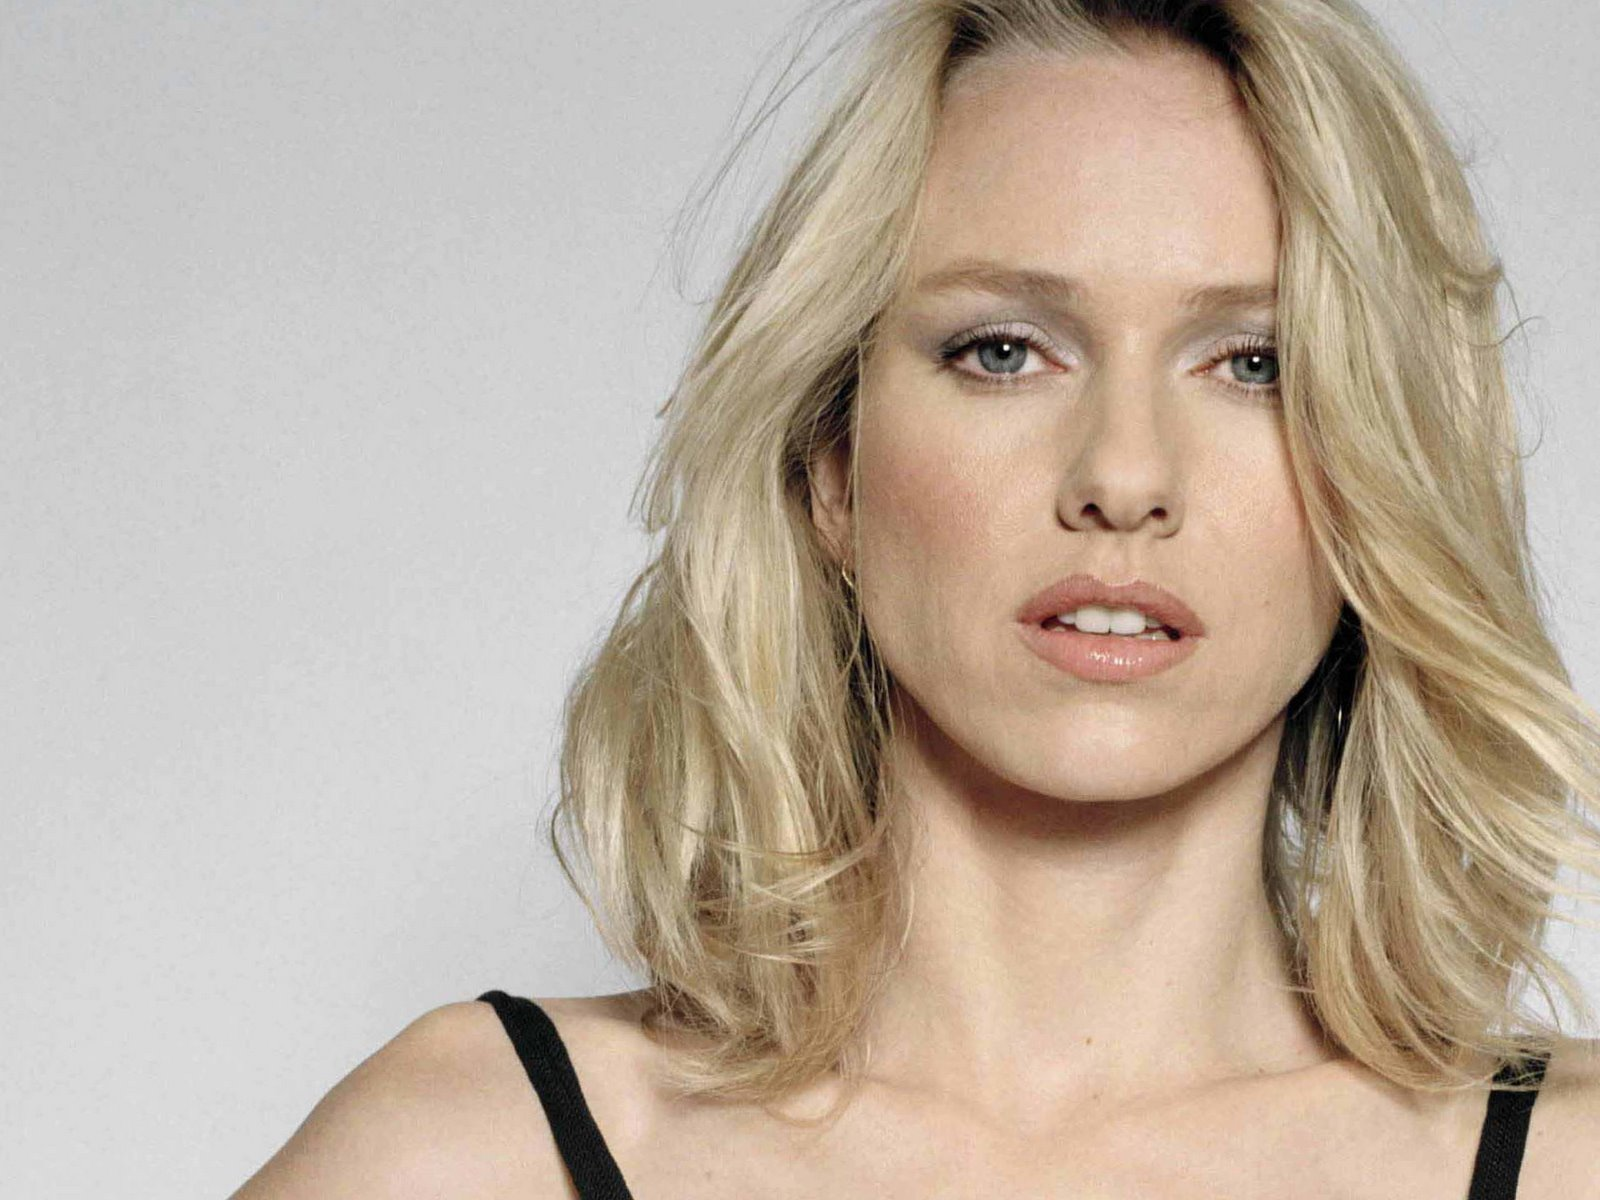 Naomi Watts Beatiful 3 wallpapers | Naomi Watts Beatiful 3 stock ...